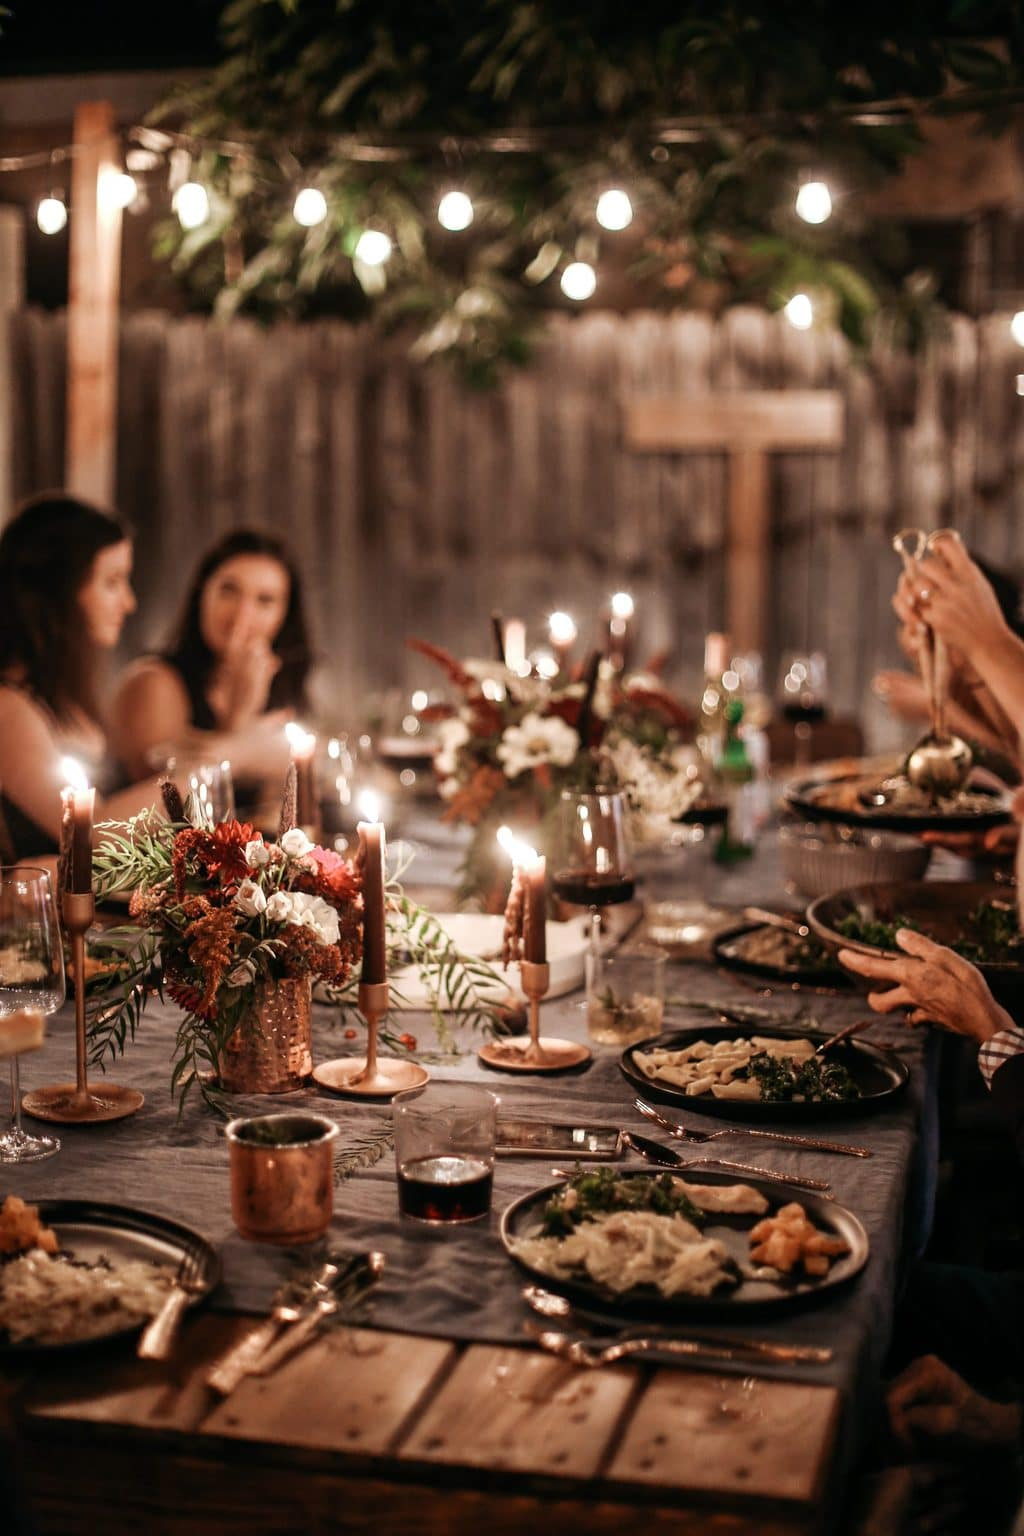 A dinner party at night with twinkle lights turned on overhead.